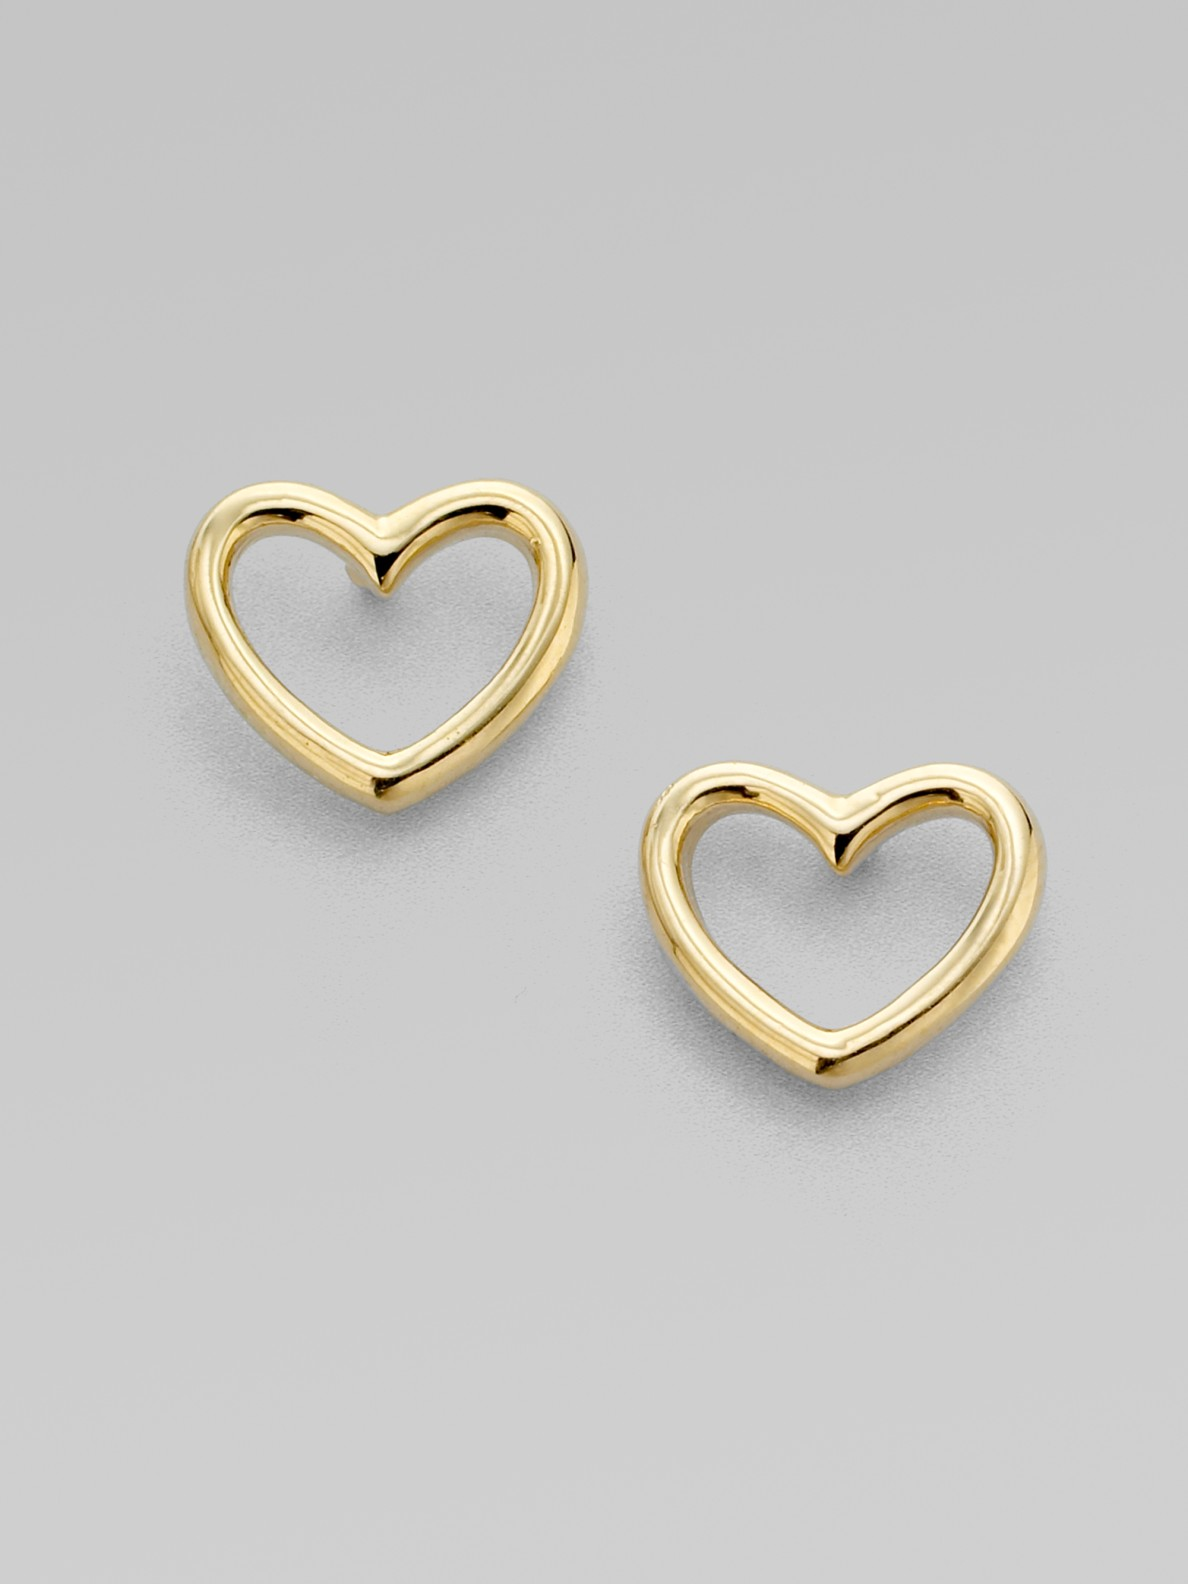 heart earrings gold - photo #38